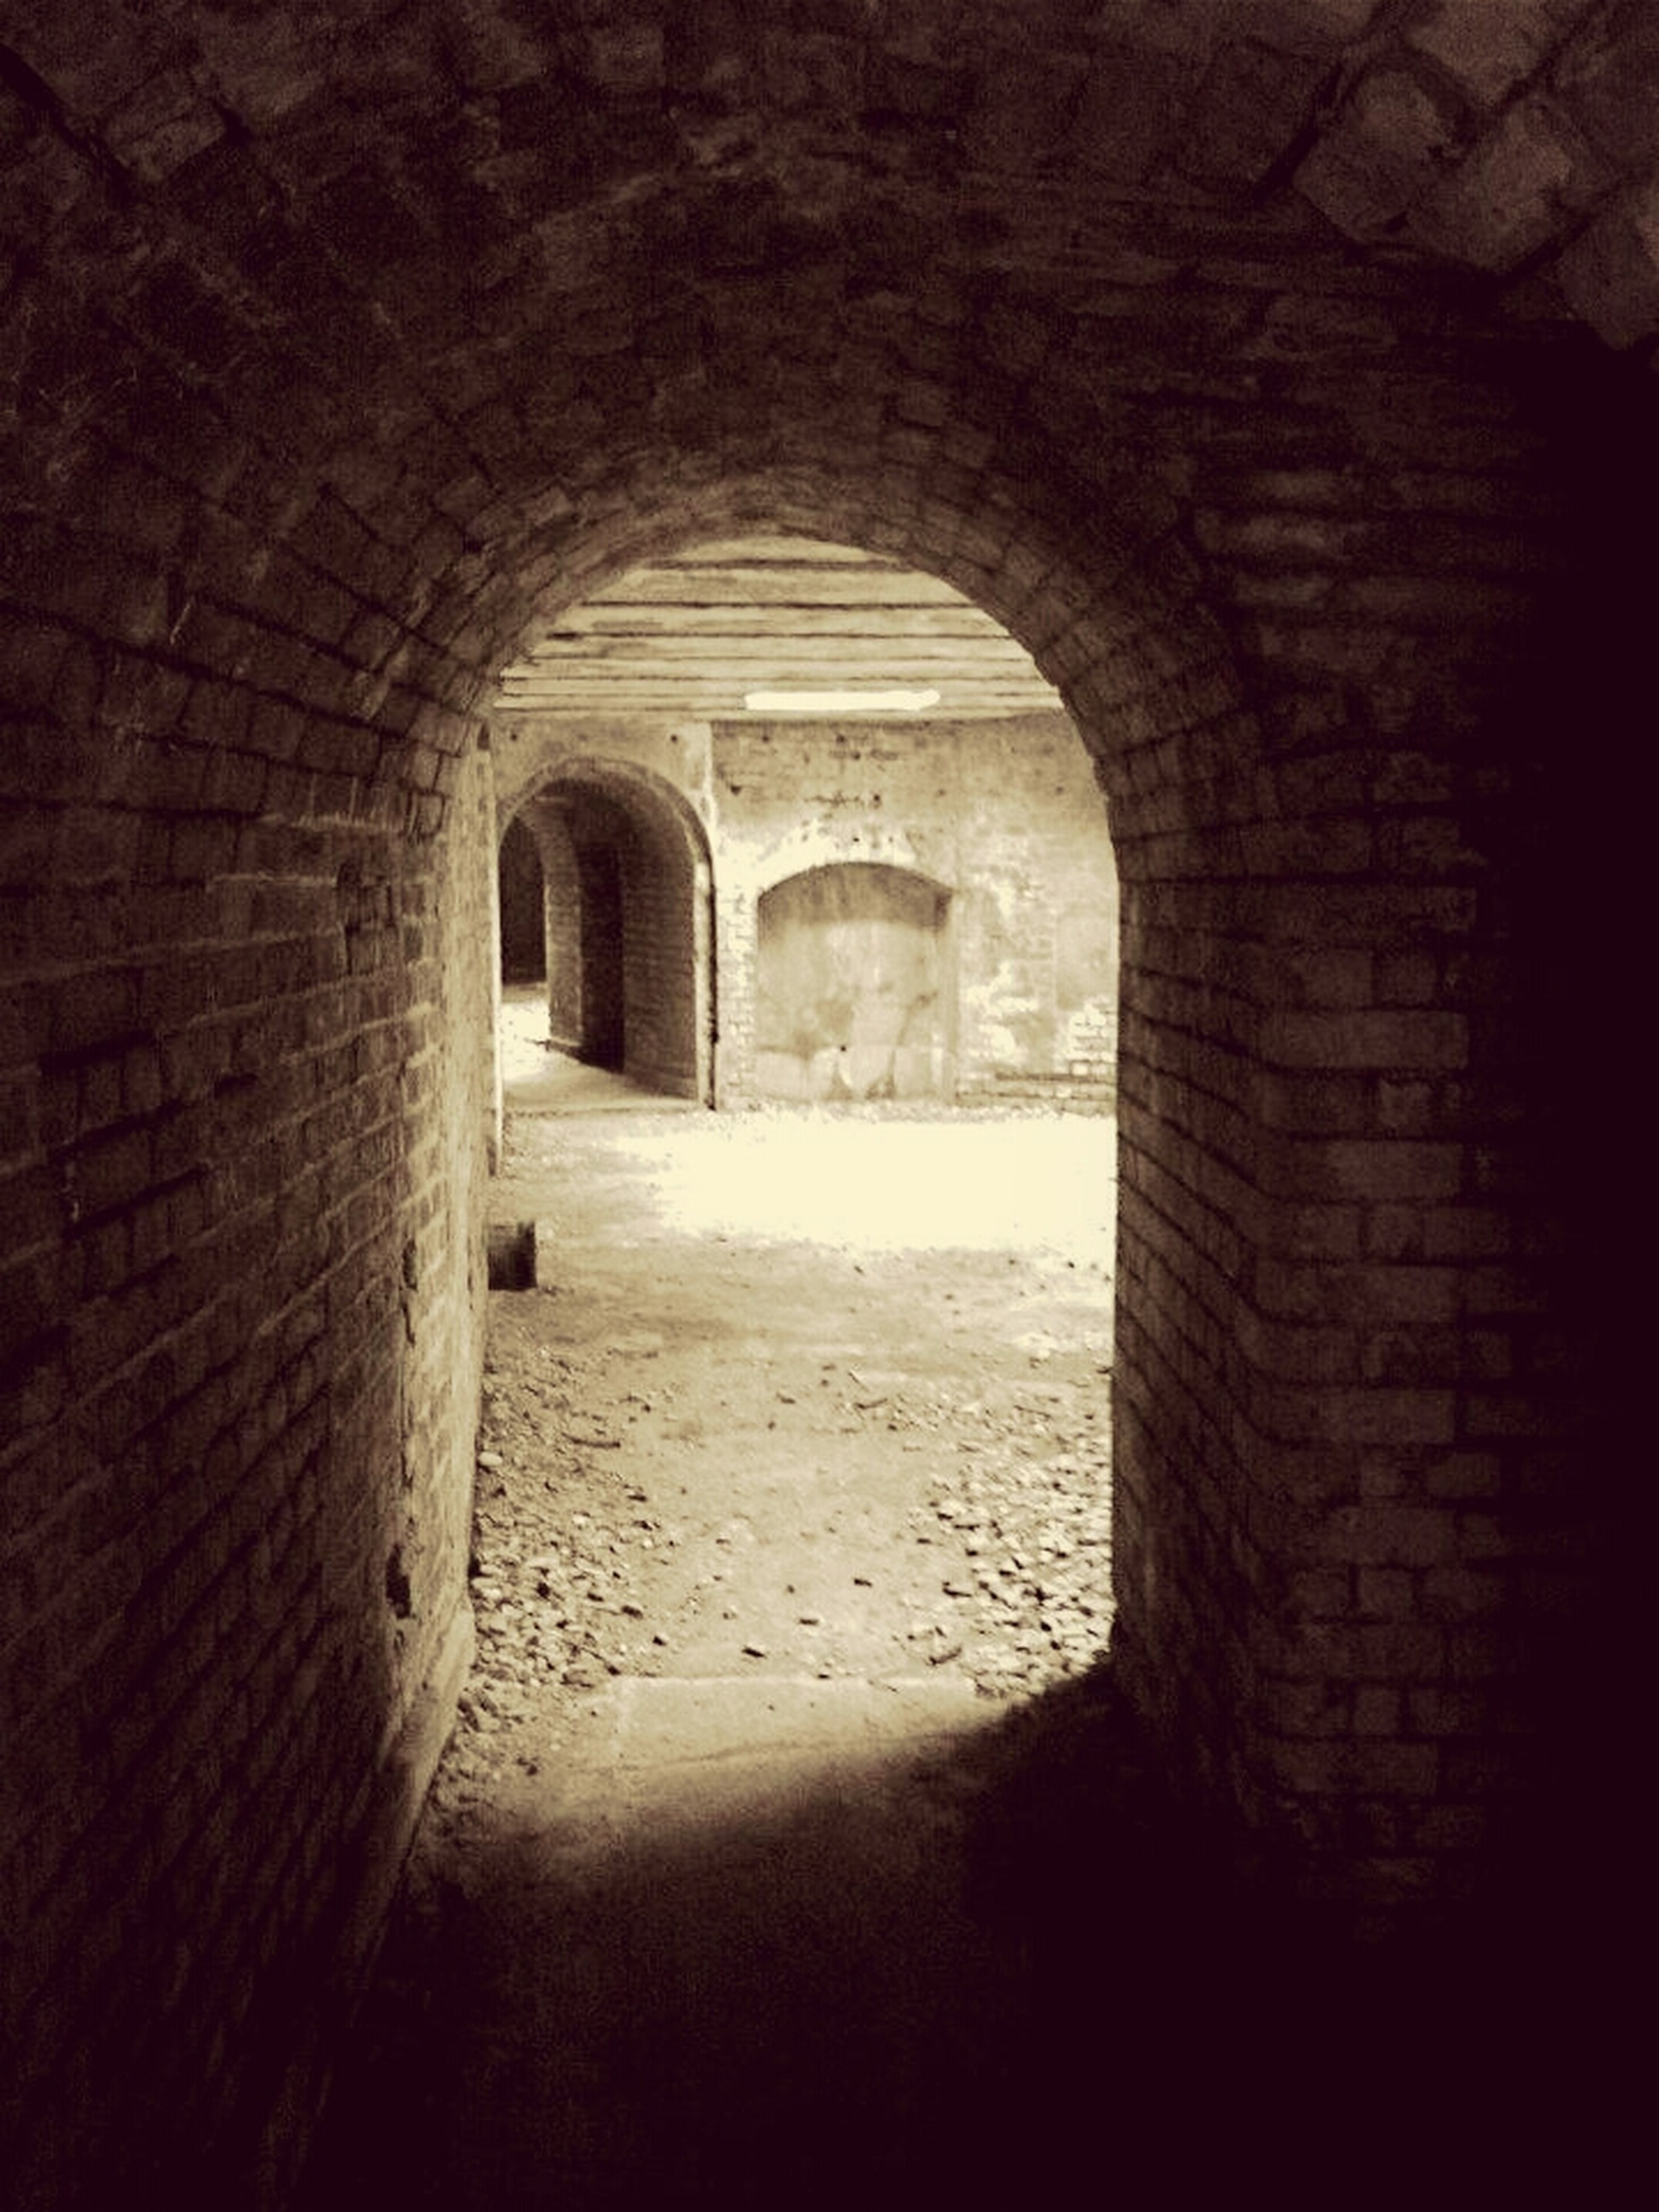 arch, architecture, built structure, indoors, archway, stone wall, history, arched, tunnel, the way forward, old, wall - building feature, old ruin, corridor, wall, day, brick wall, no people, sunlight, diminishing perspective